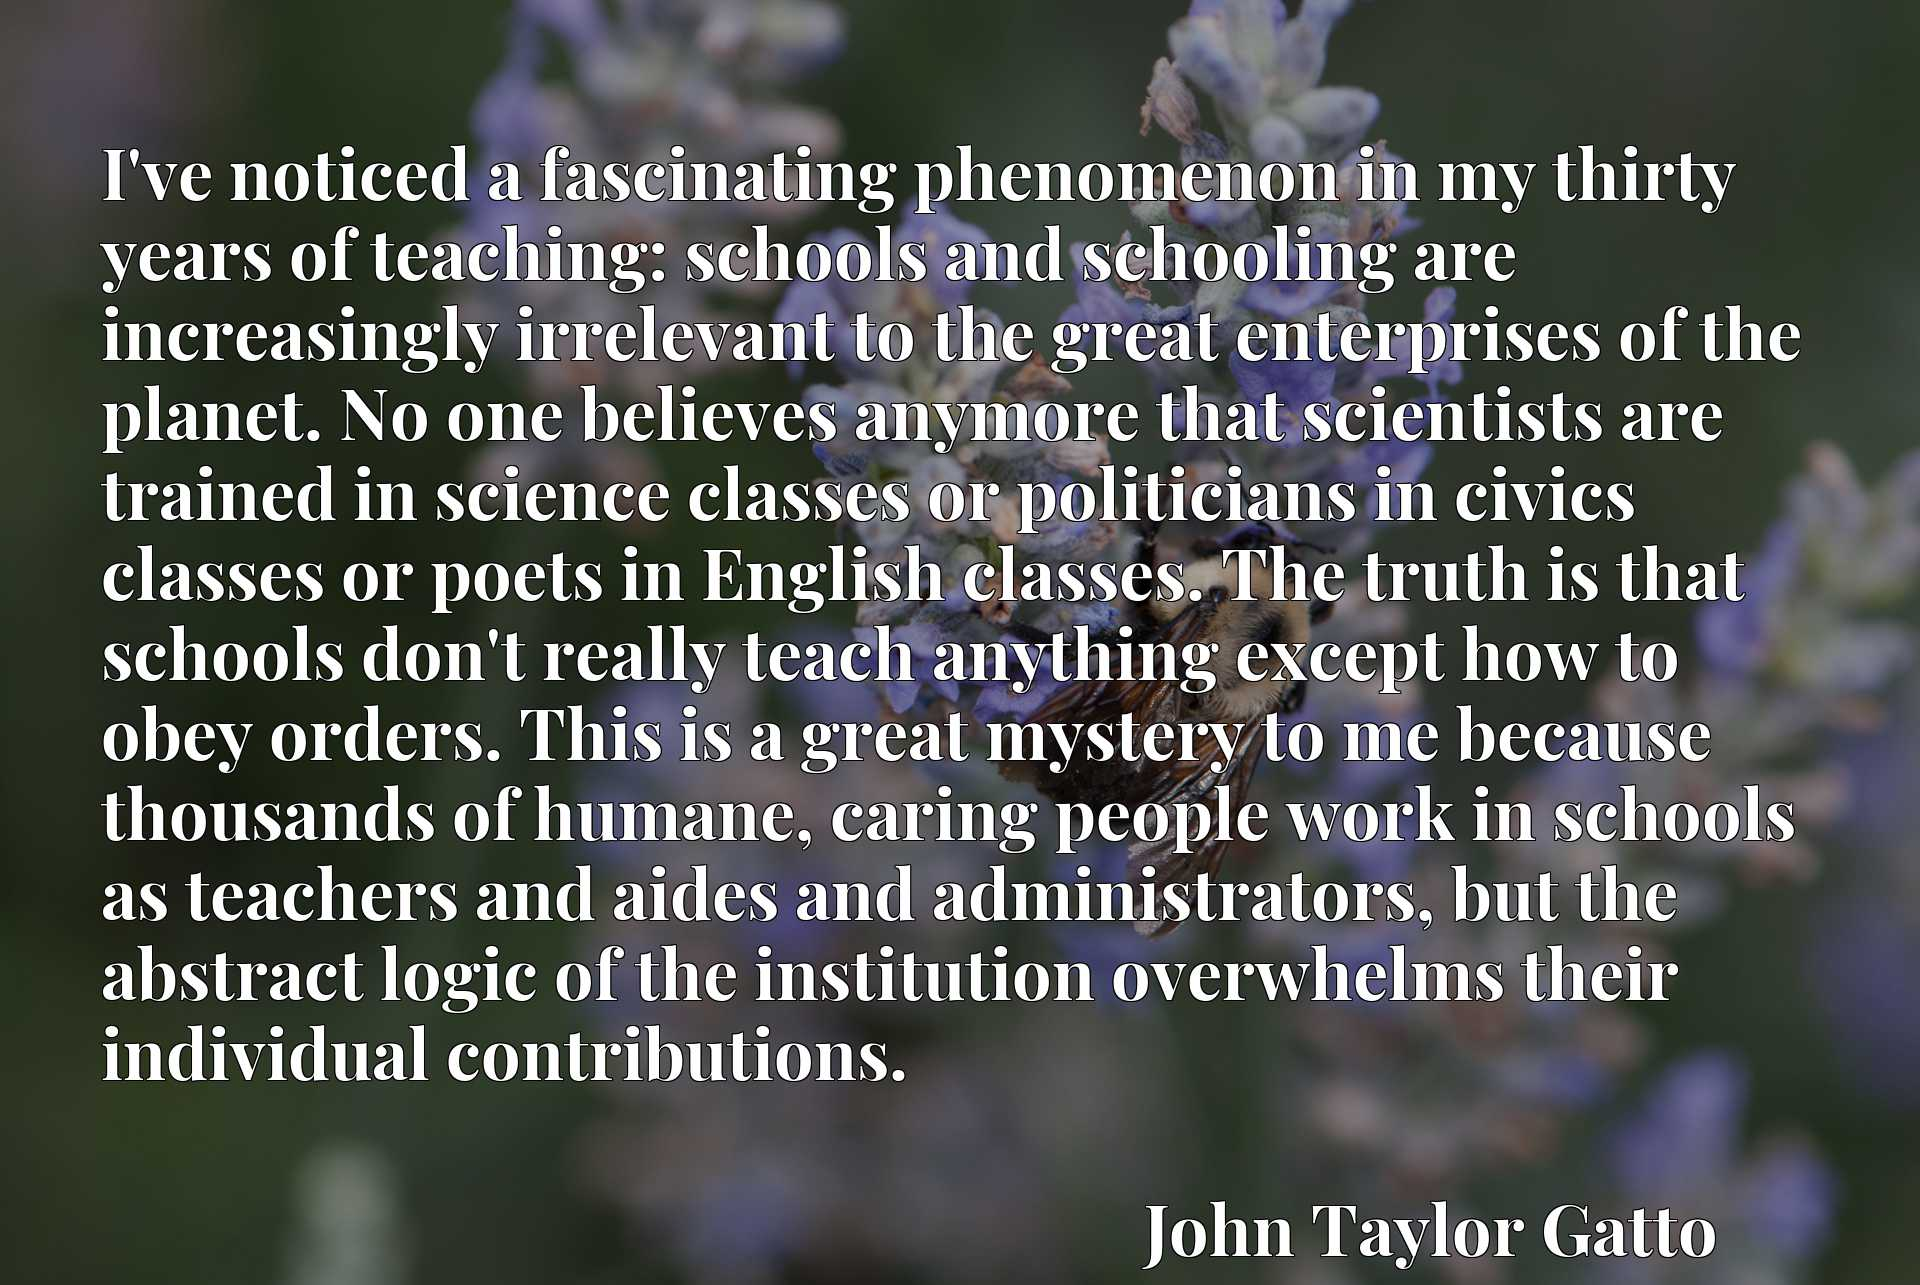 I've noticed a fascinating phenomenon in my thirty years of teaching: schools and schooling are increasingly irrelevant to the great enterprises of the planet. No one believes anymore that scientists are trained in science classes or politicians in civics classes or poets in English classes. The truth is that schools don't really teach anything except how to obey orders. This is a great mystery to me because thousands of humane, caring people work in schools as teachers and aides and administrators, but the abstract logic of the institution overwhelms their individual contributions.